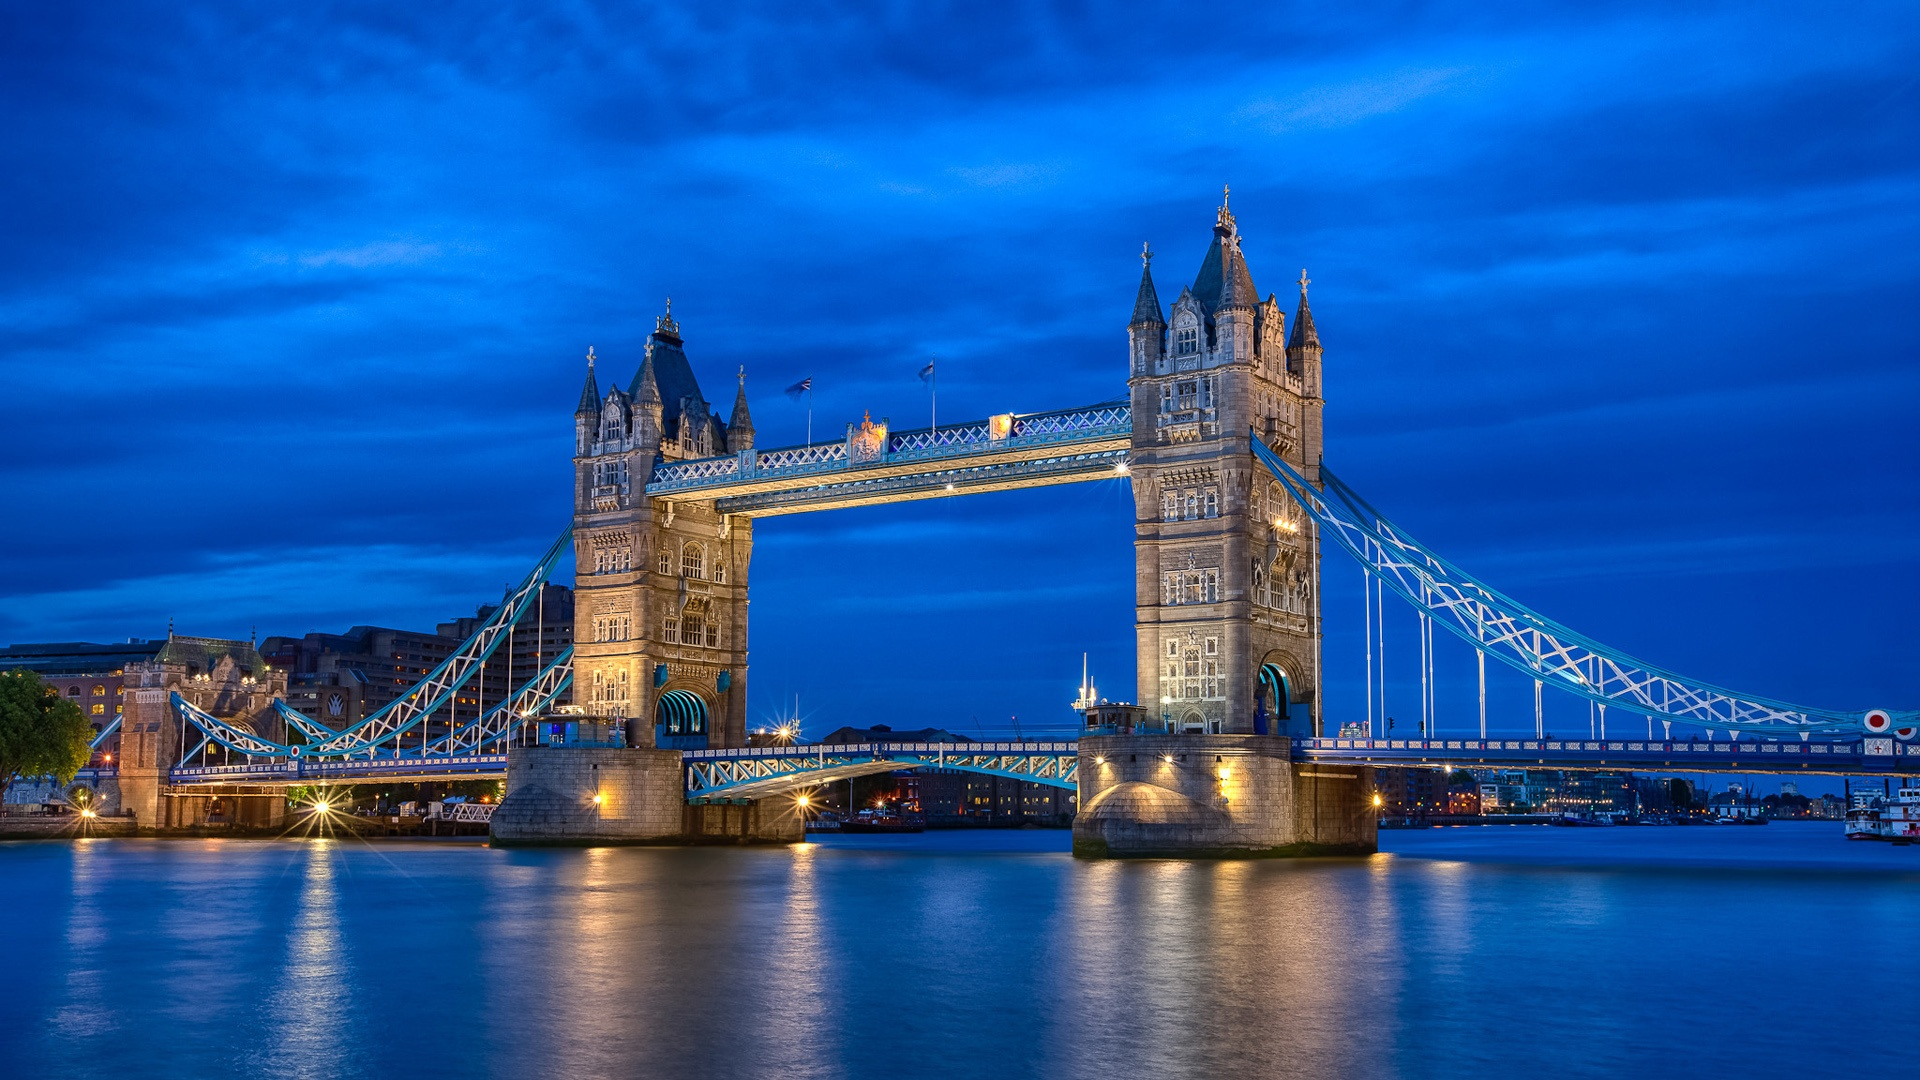 England-London-city-night-river-Thames-Tower-Bridge-blue-sky-lights_1920x1080